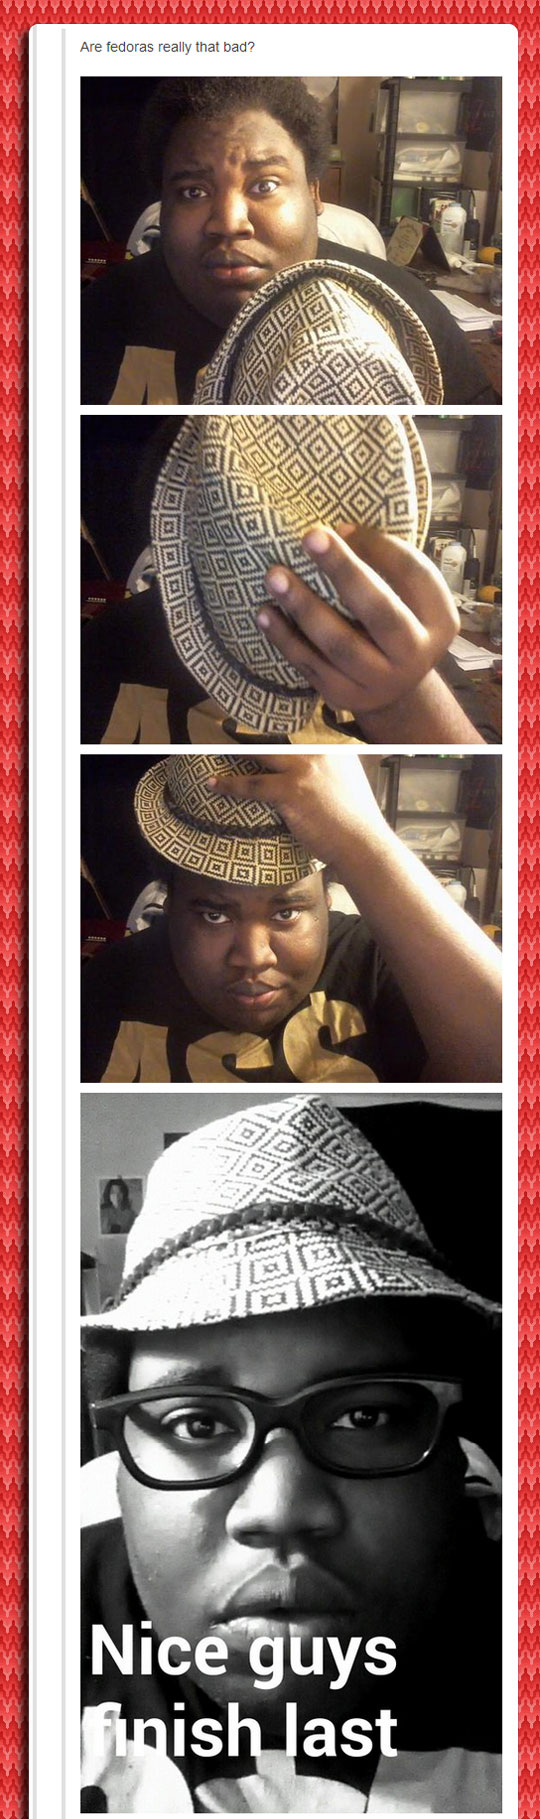 funny-picture-fat-guy-fedora-bad